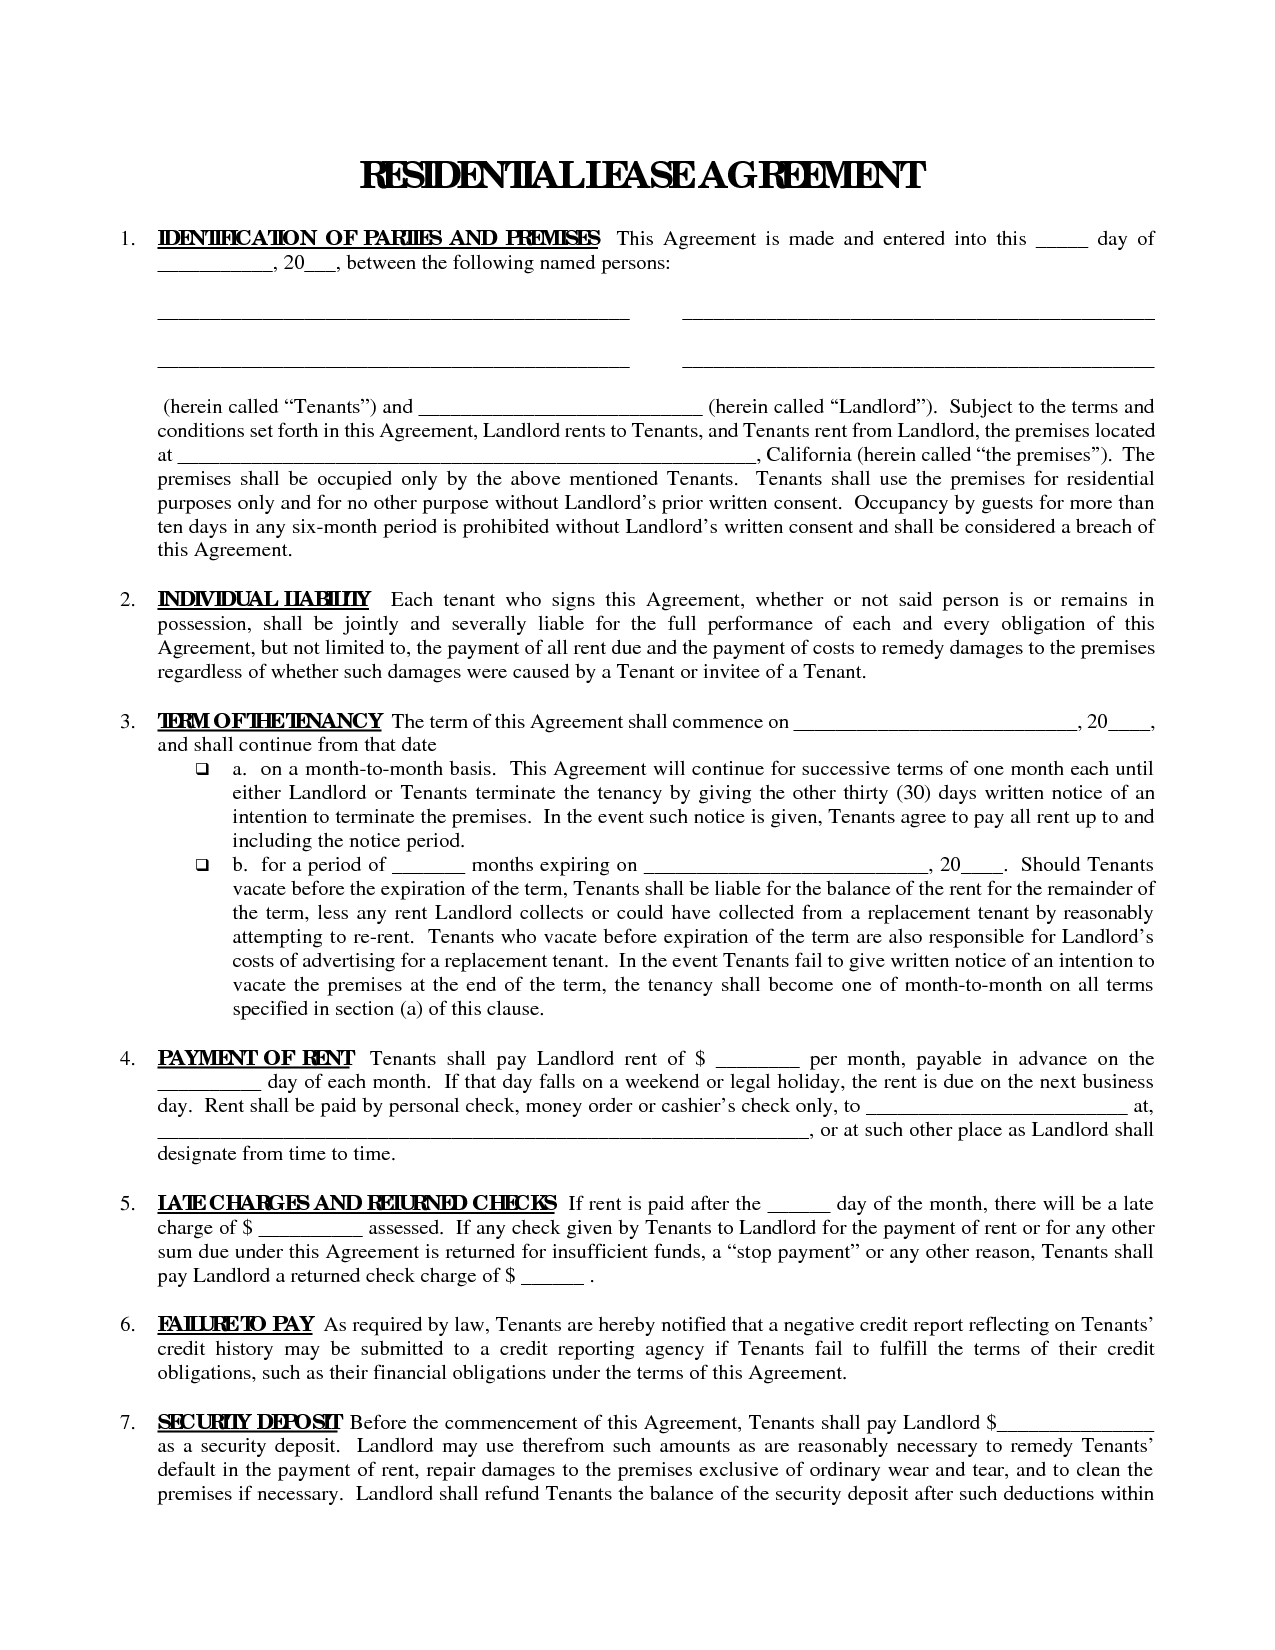 Printable Residential Free House Lease Agreement | Residential Lease  Agreement: Real Estate Legal Form With Apartment Lease Agreement Free Printable